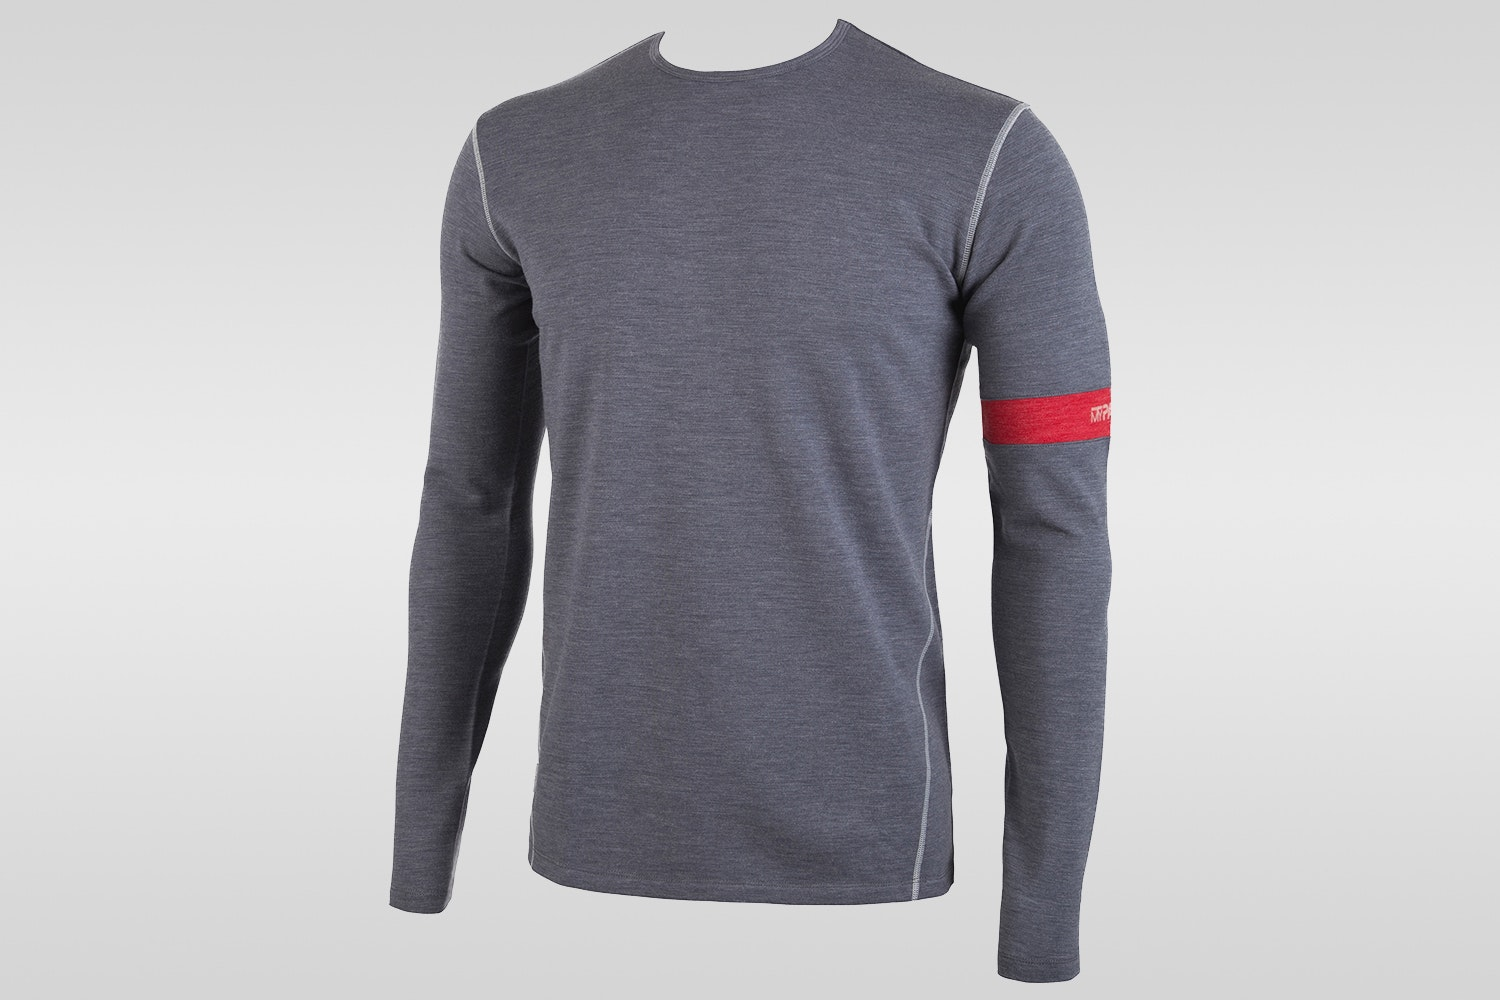 Long-sleeve Shirt - Charcoal